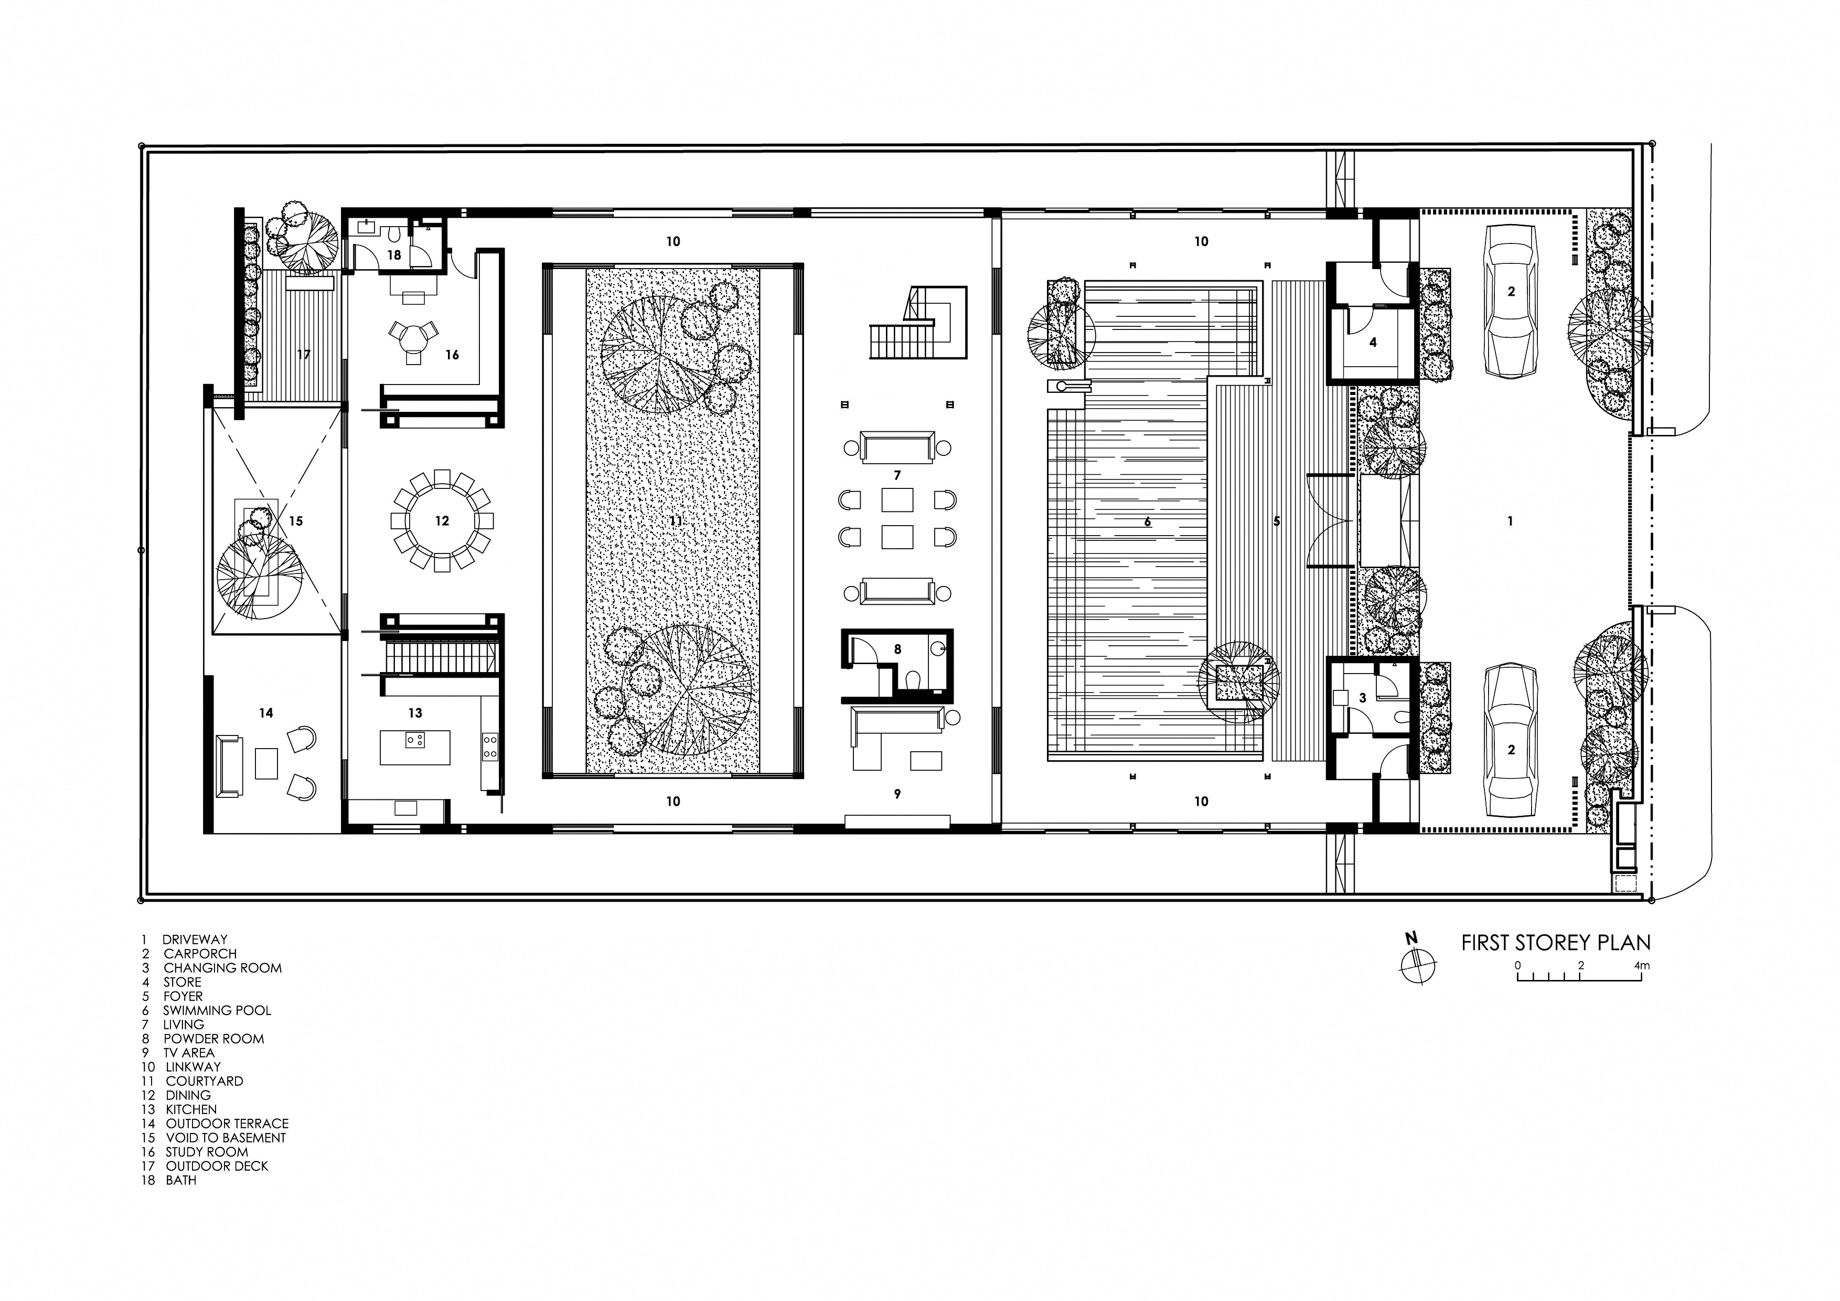 First Floor Plan - Enclosed Open House Luxury Residence - Ramsgate Rd, Singapore